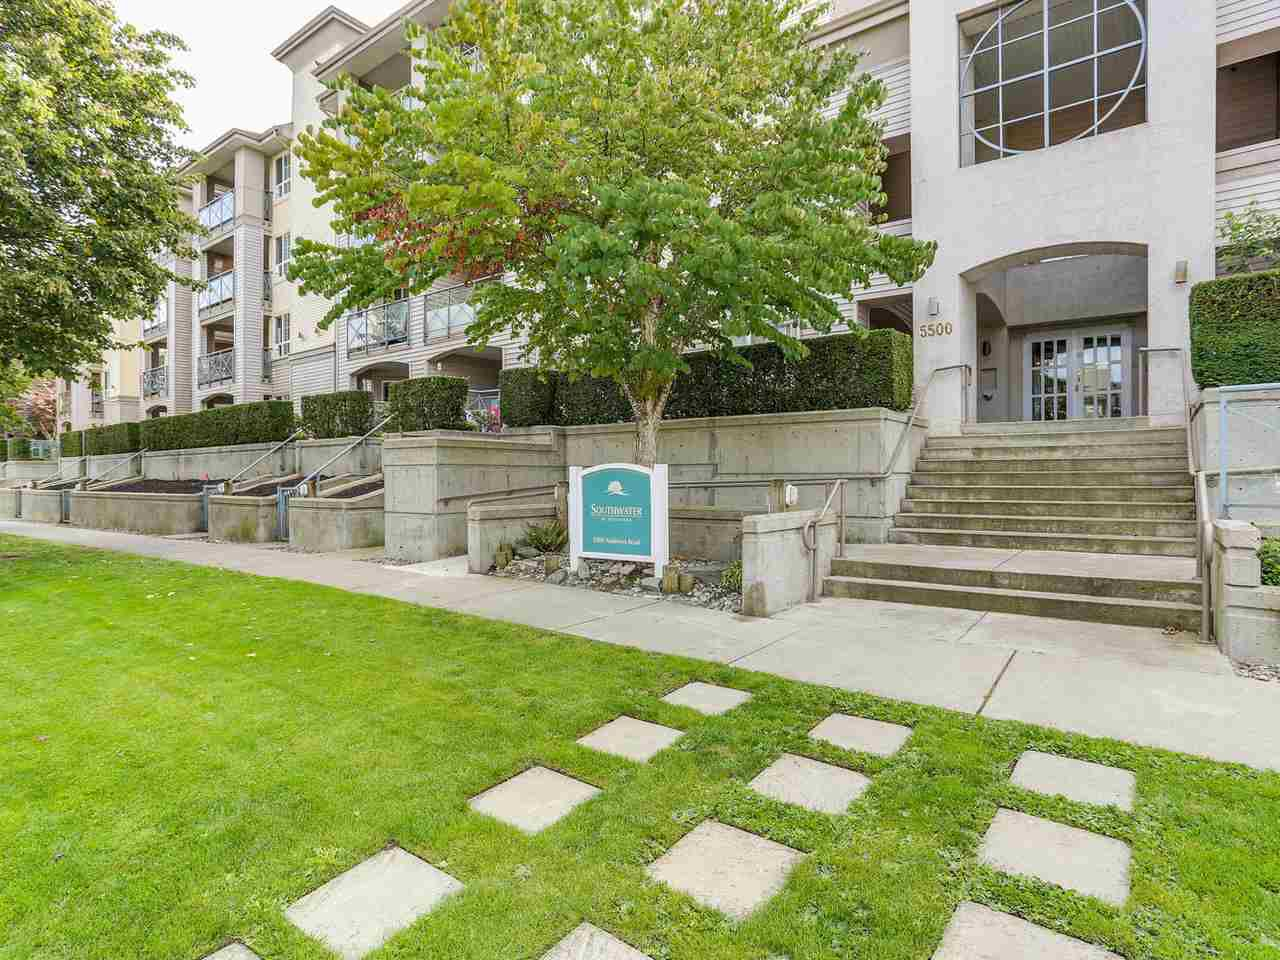 "Main Photo: 329 5500 ANDREWS Road in Richmond: Steveston South Condo for sale in ""SOUTHWATER"" : MLS®# R2107984"